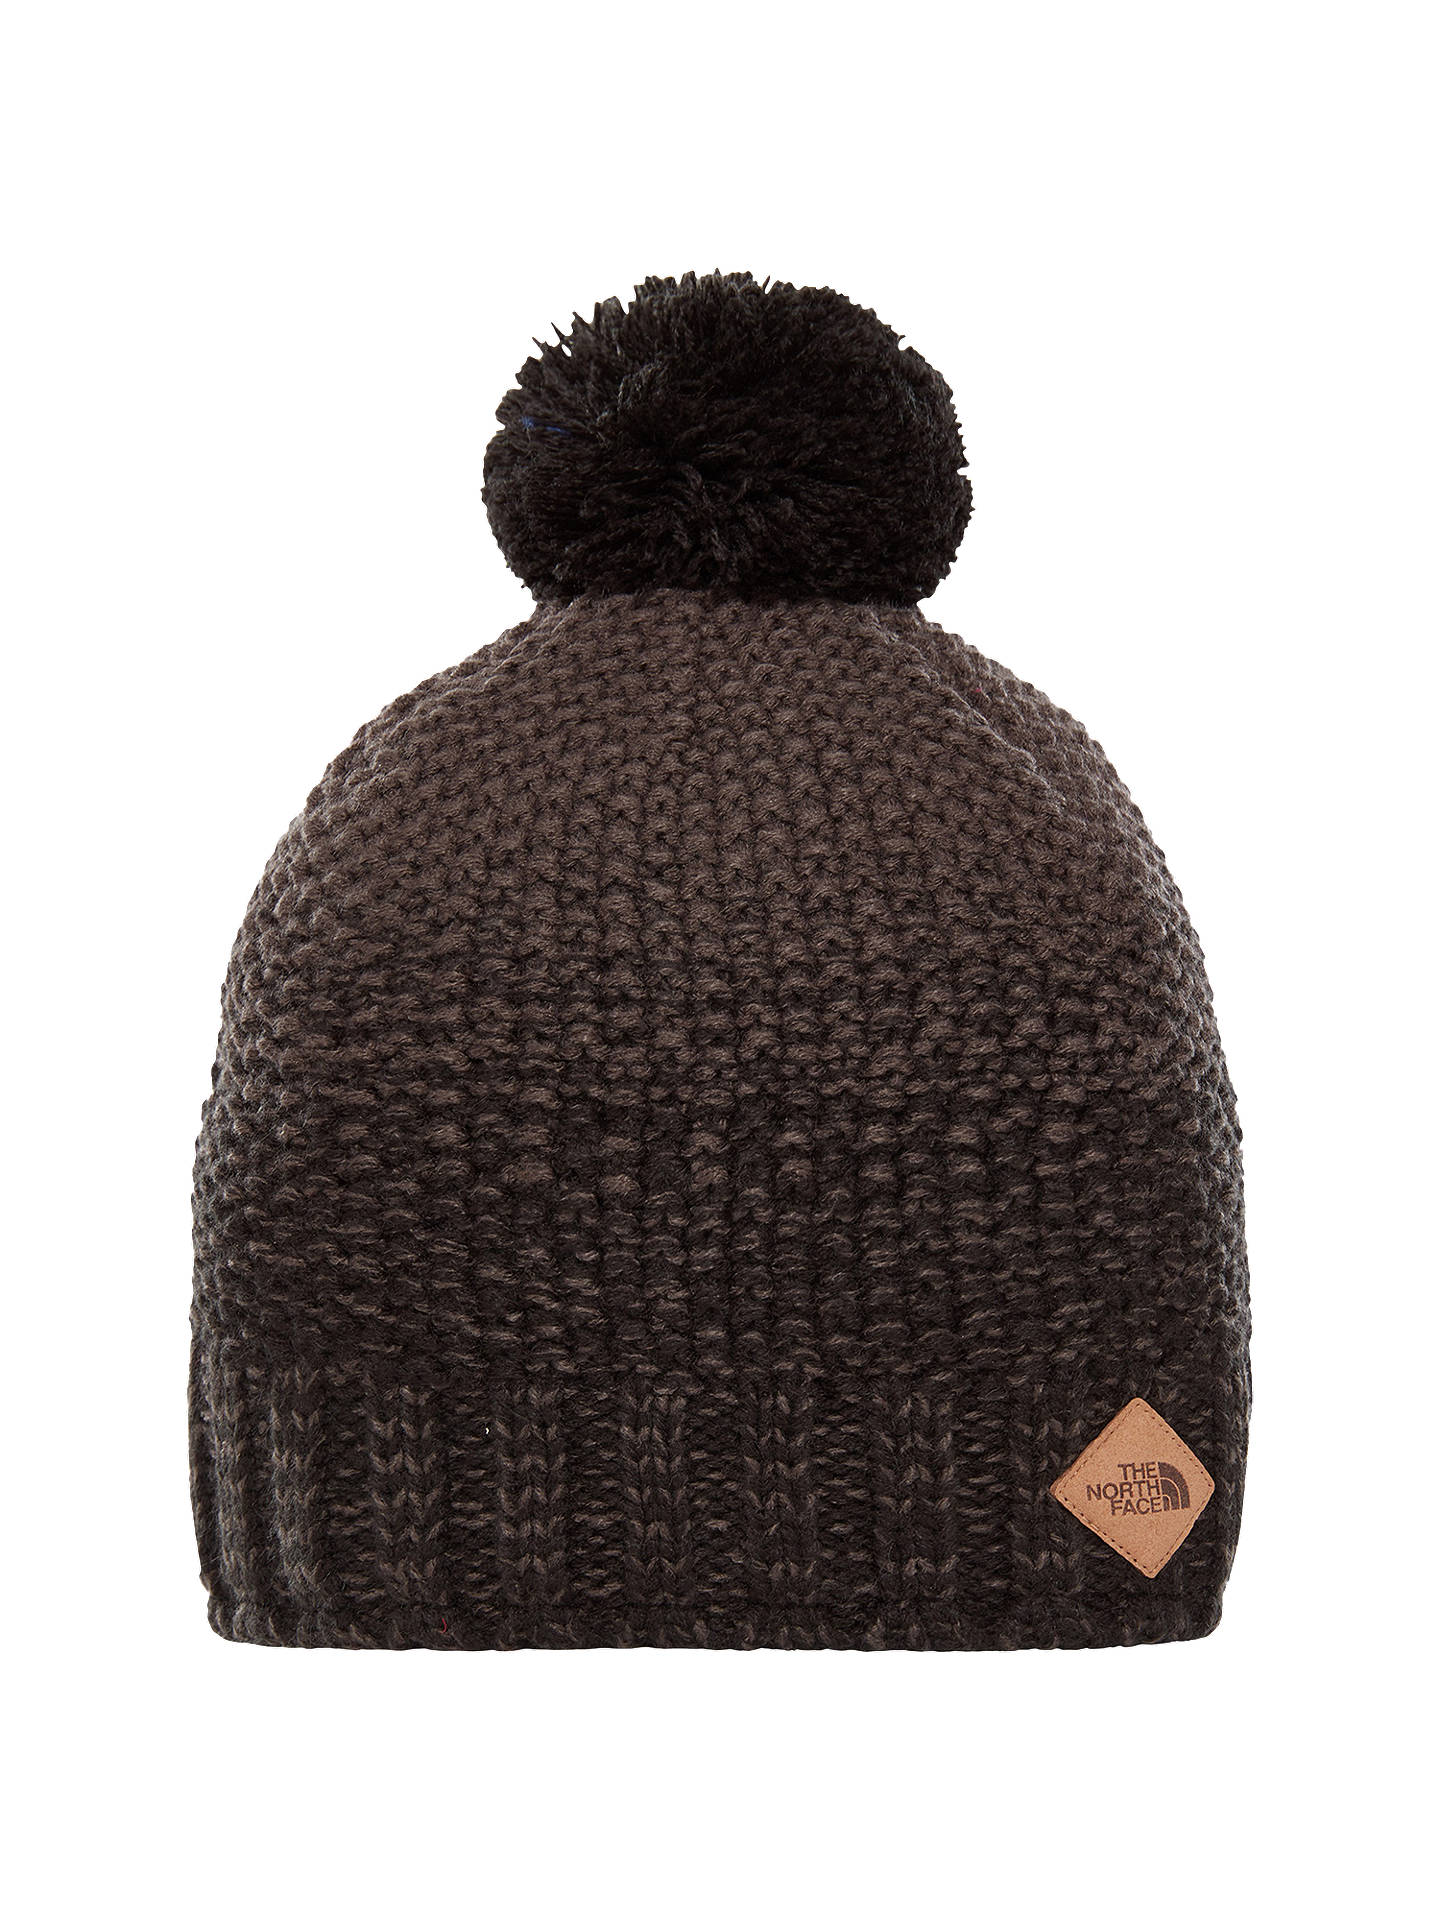 Buy The North Face Antlers Beanie, Black/Grey Online at johnlewis.com